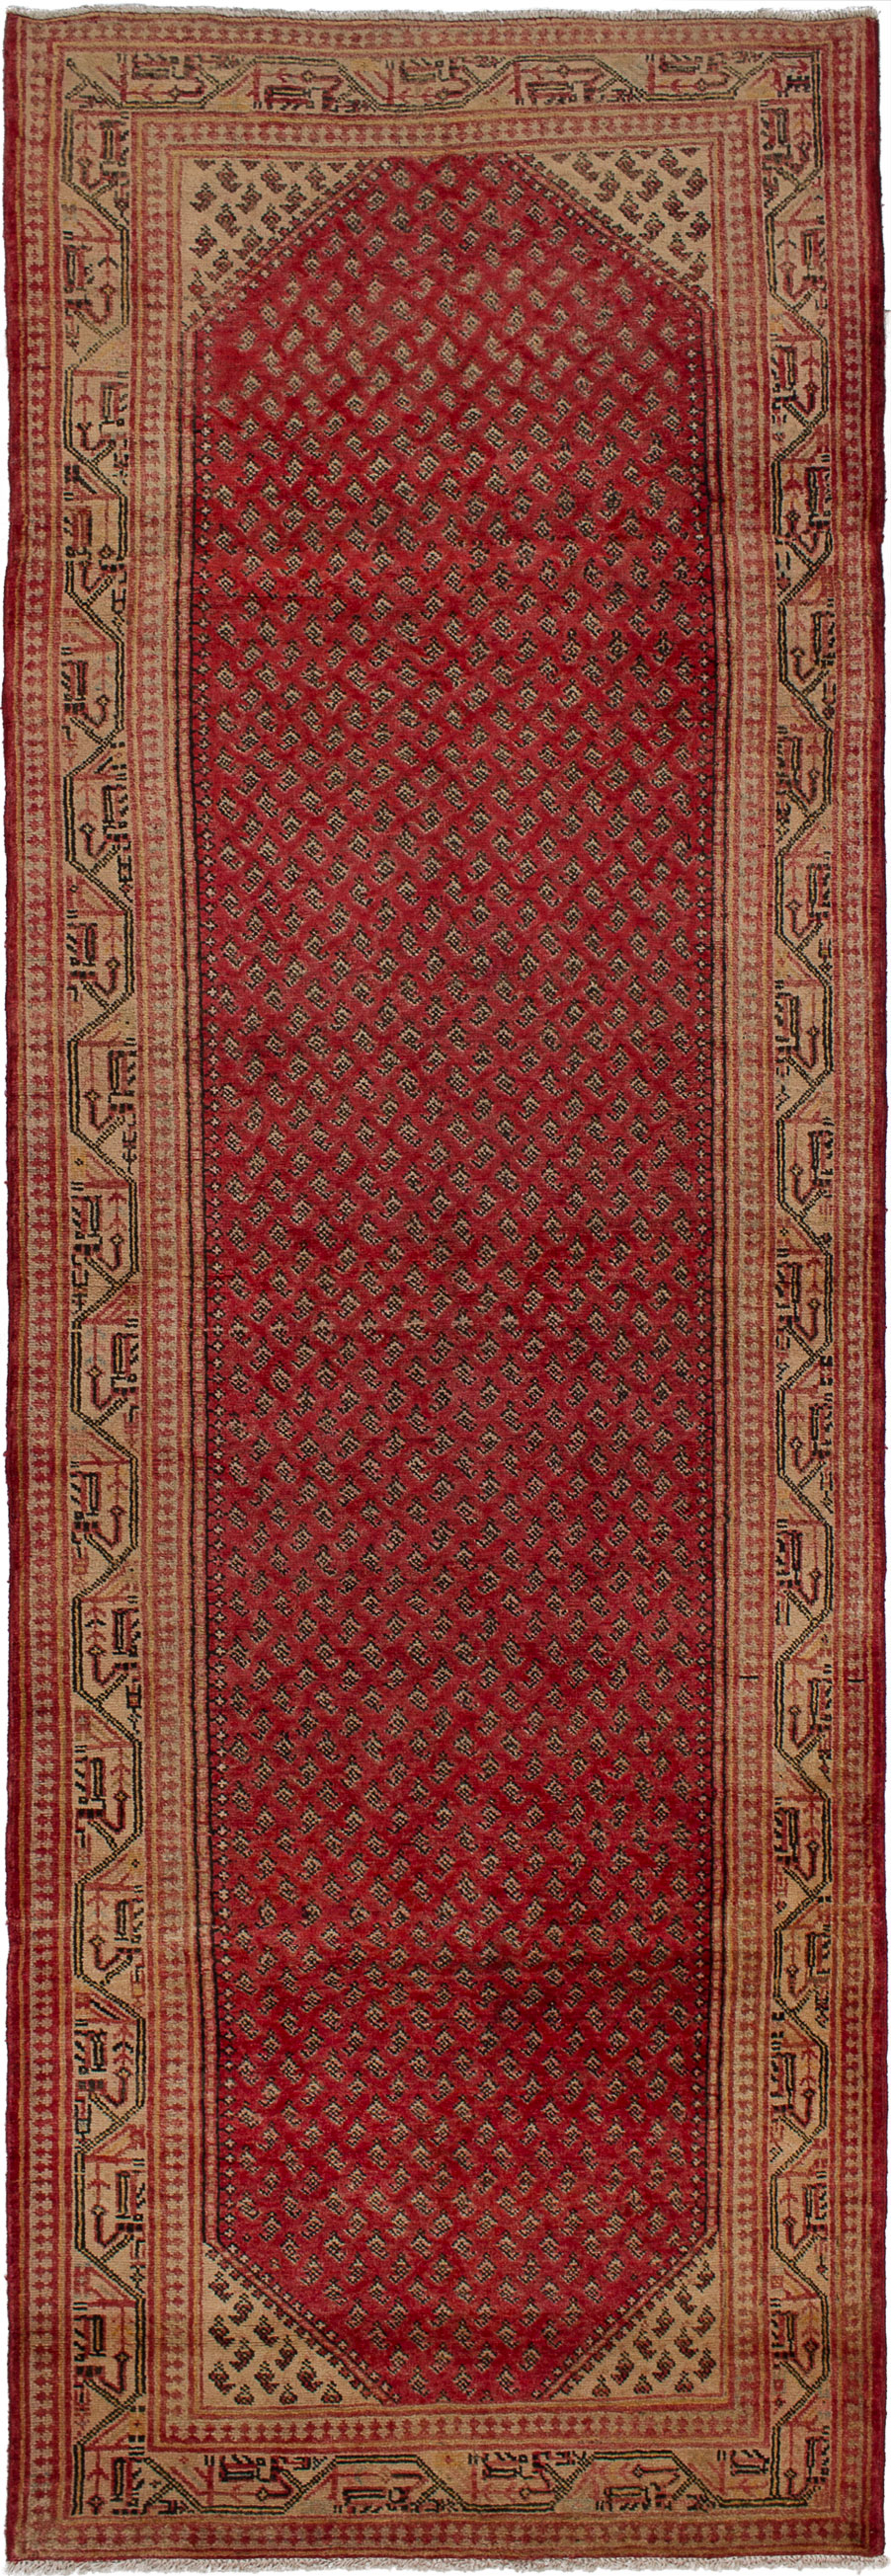 "Hand-knotted Arak Red Wool Rug 3'6"" x 10'4""  Size: 3'6"" x 10'4"""